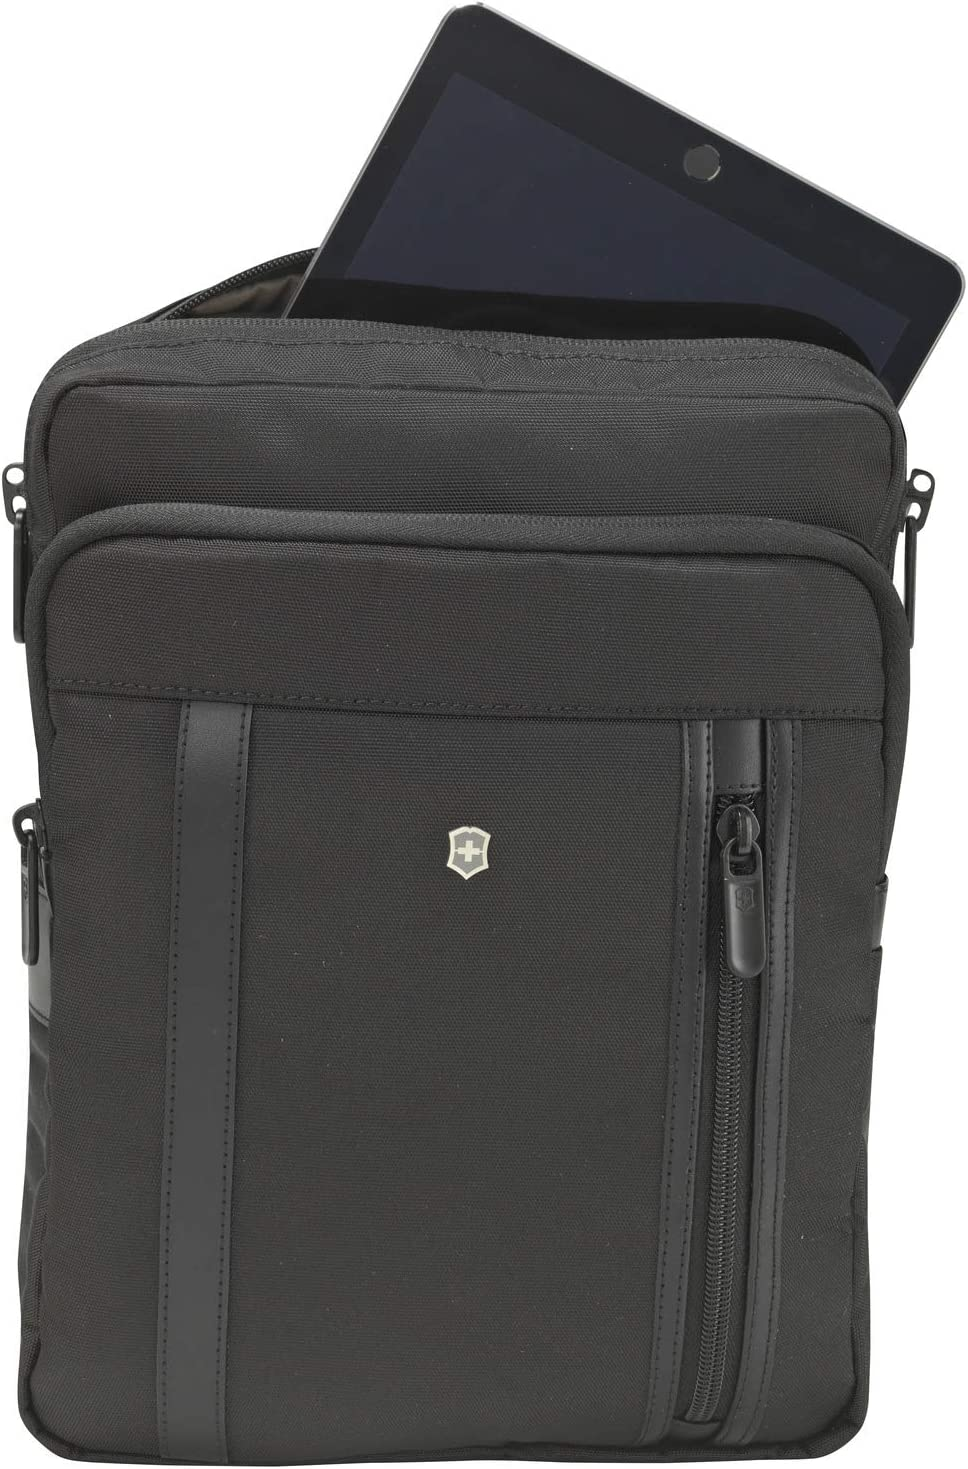 Victorinox Werks Professional 2.0 Crossbody Laptop Bag, Black, 12.6-inch